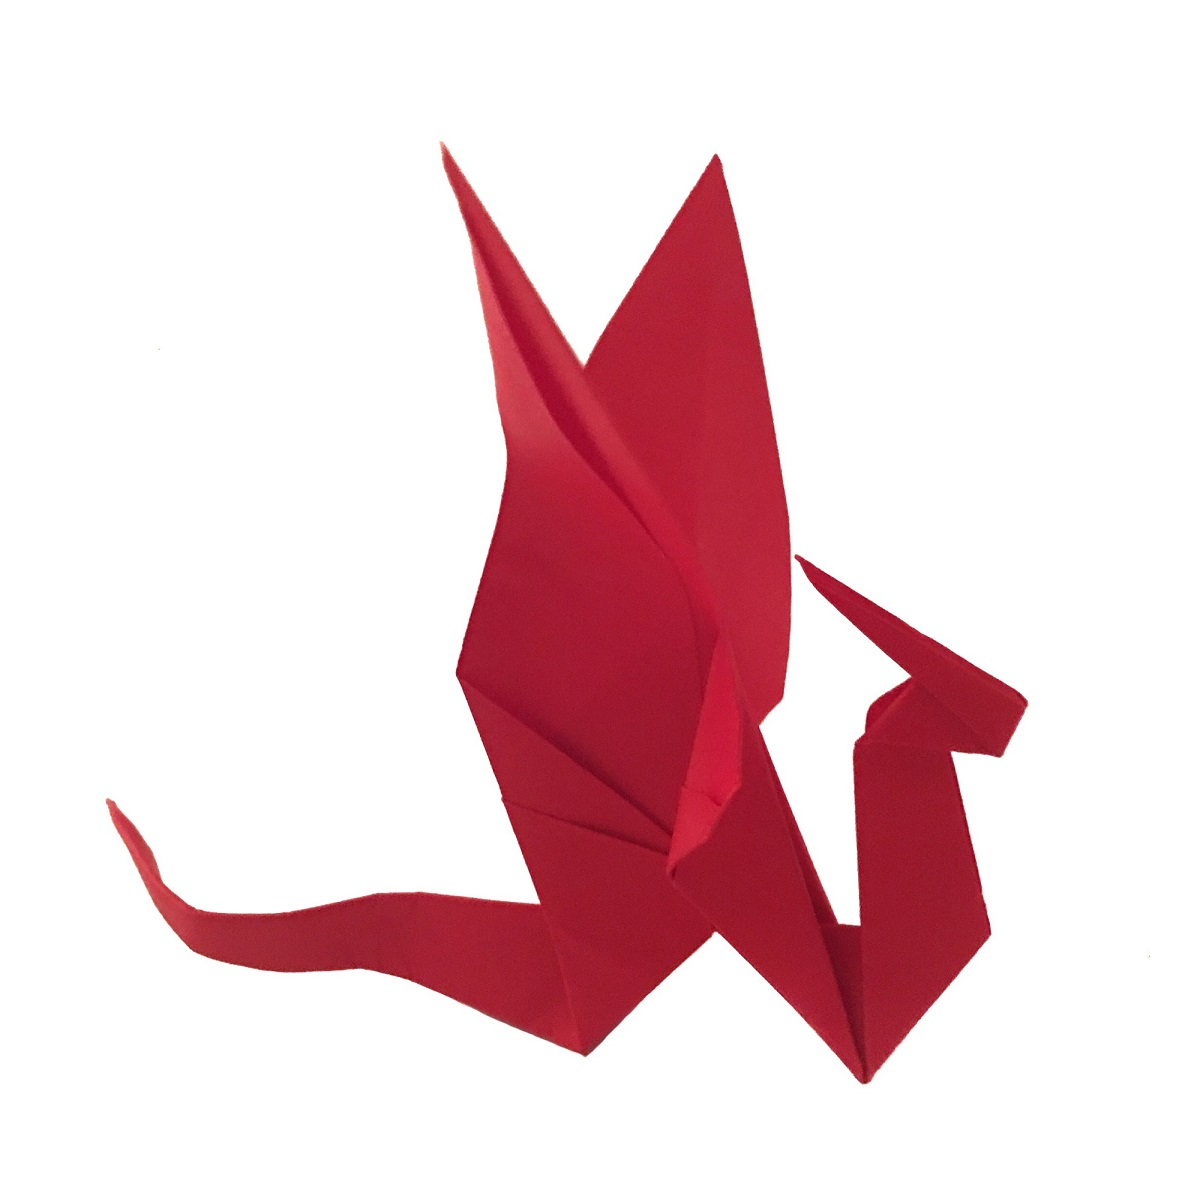 A Traditional Origami Dragon Origami Expressions